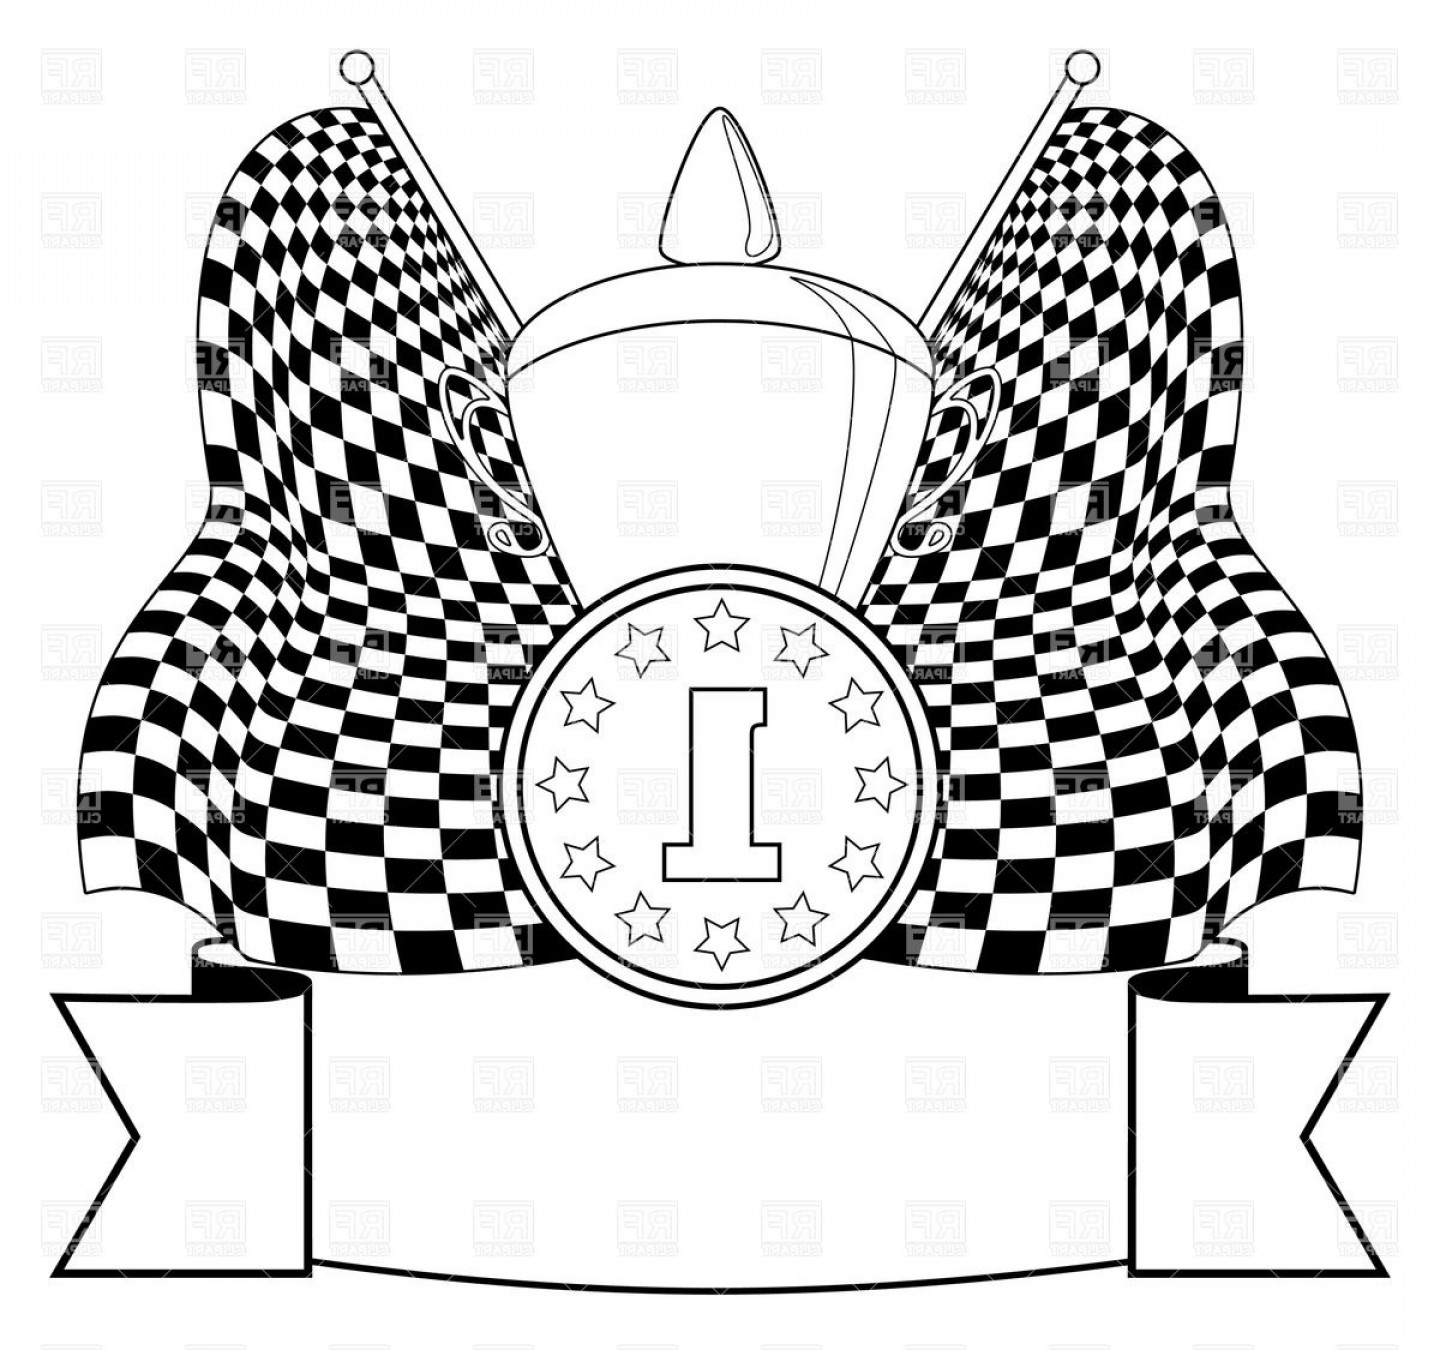 Position Vector Of A Circle Formula: Checkered Race Flag With Cup And Medal St Position Award Balck And White Contour Vector Clipart